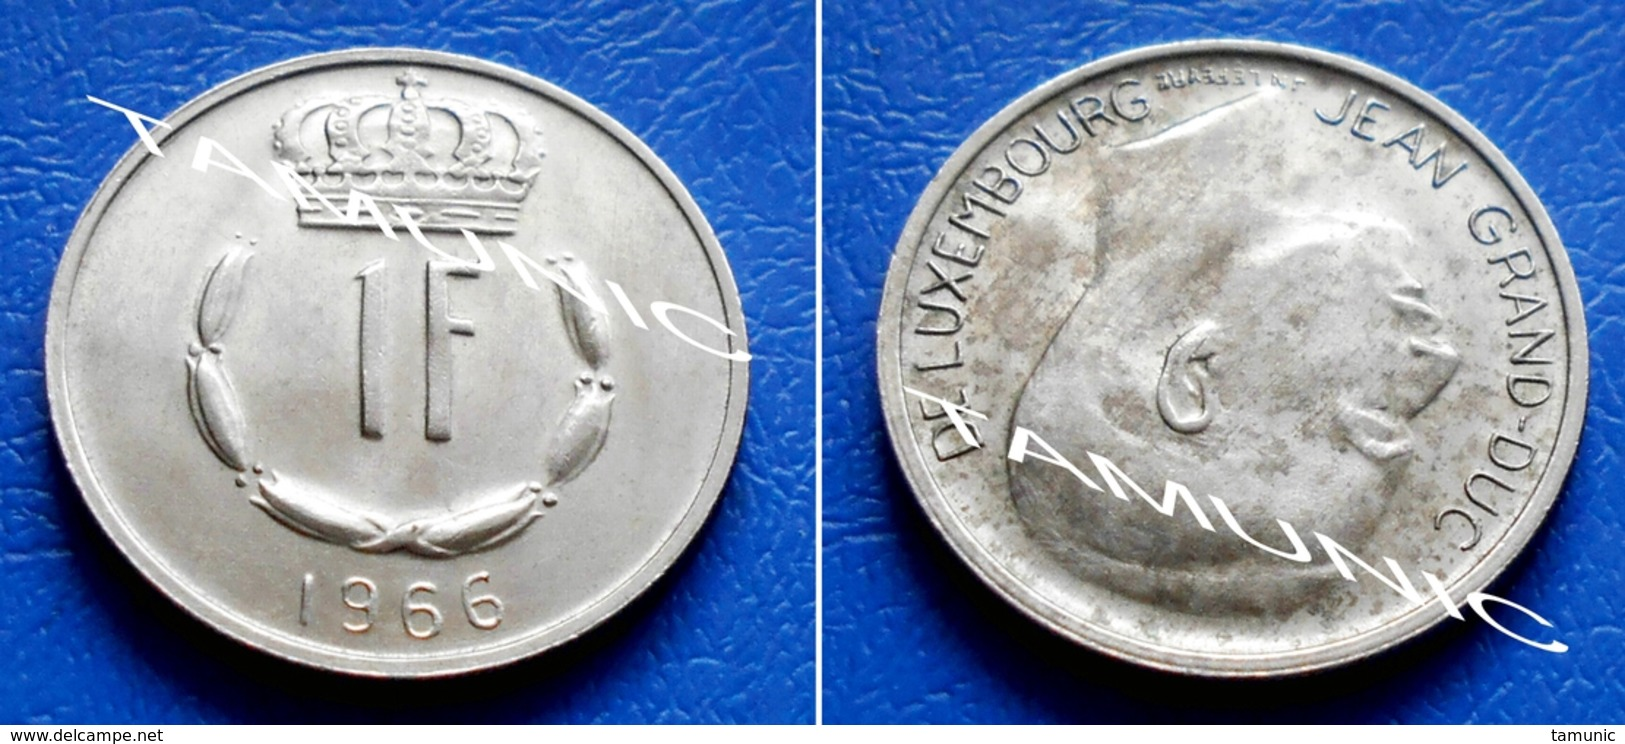 LUXEMBOURG 1 Franc 1966 JEAN GRAND-DUC - Luxembourg